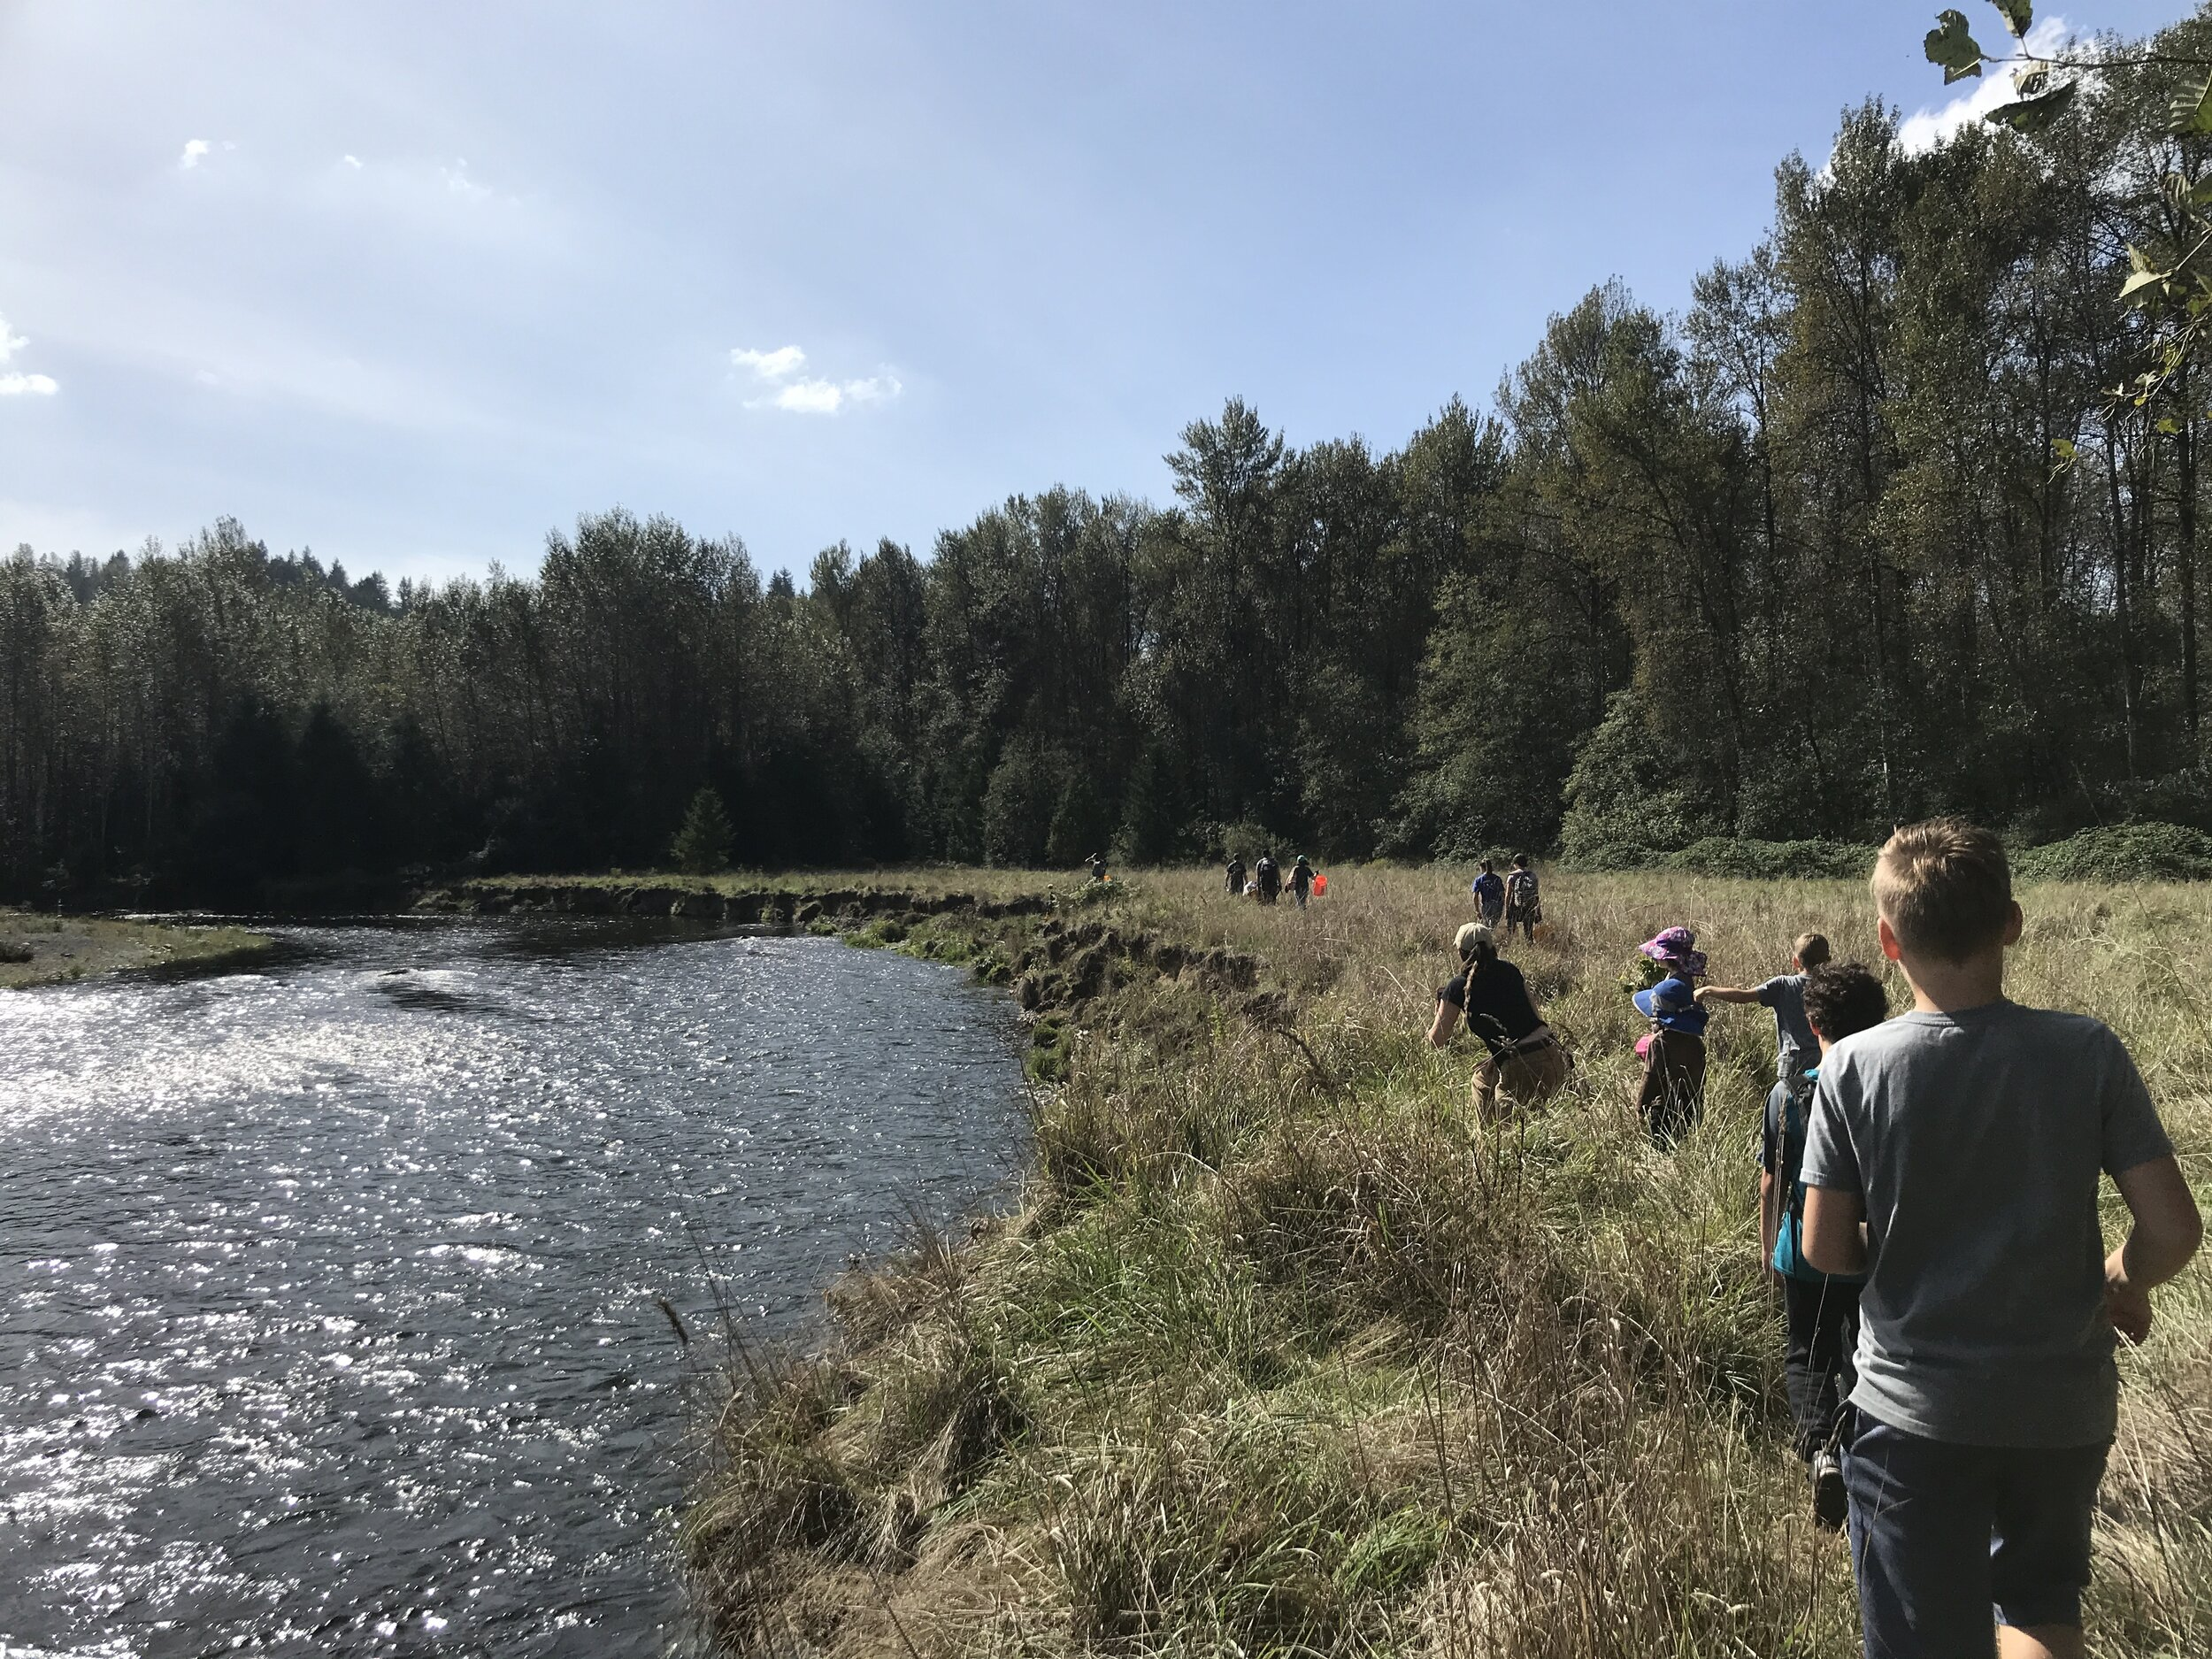 UPCOMING EVENTS for the Homeschool Stewardship Squad   (2nd Thursdays & 4th Wednesdays 11-2)  Thurs 10/10: Riverton Creek Parcel, Tukwila, GTP Wed 10/23: Cheasty Greenspace, Columbia City Seattle, GSP Thurs 11/14: Northacres Park, Haller Lake, Seattle, GSP Wed 11/27: Riverton Creek Parcel, Tukwila, GTP